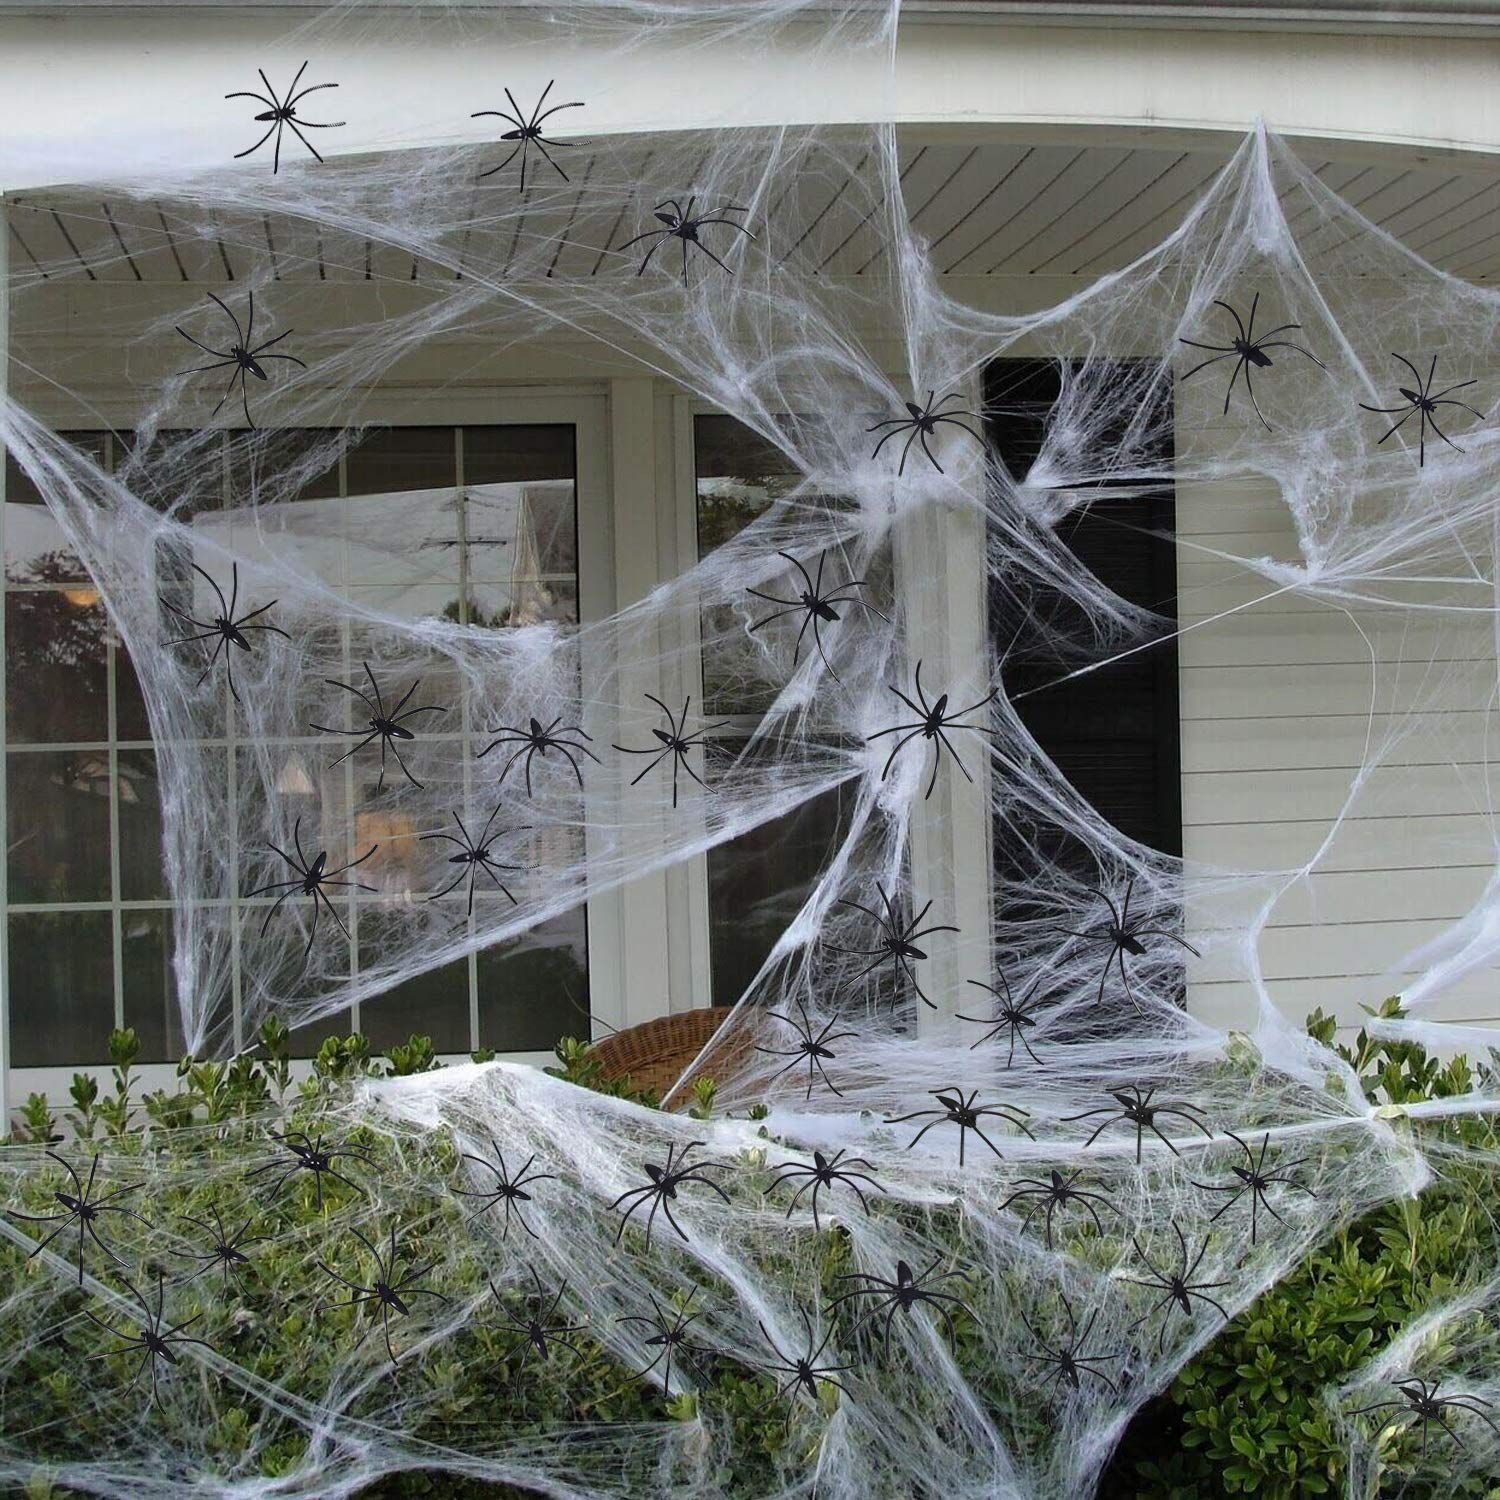 White Spider Web Looks Like Real Cobwebs, Adding An Eerie